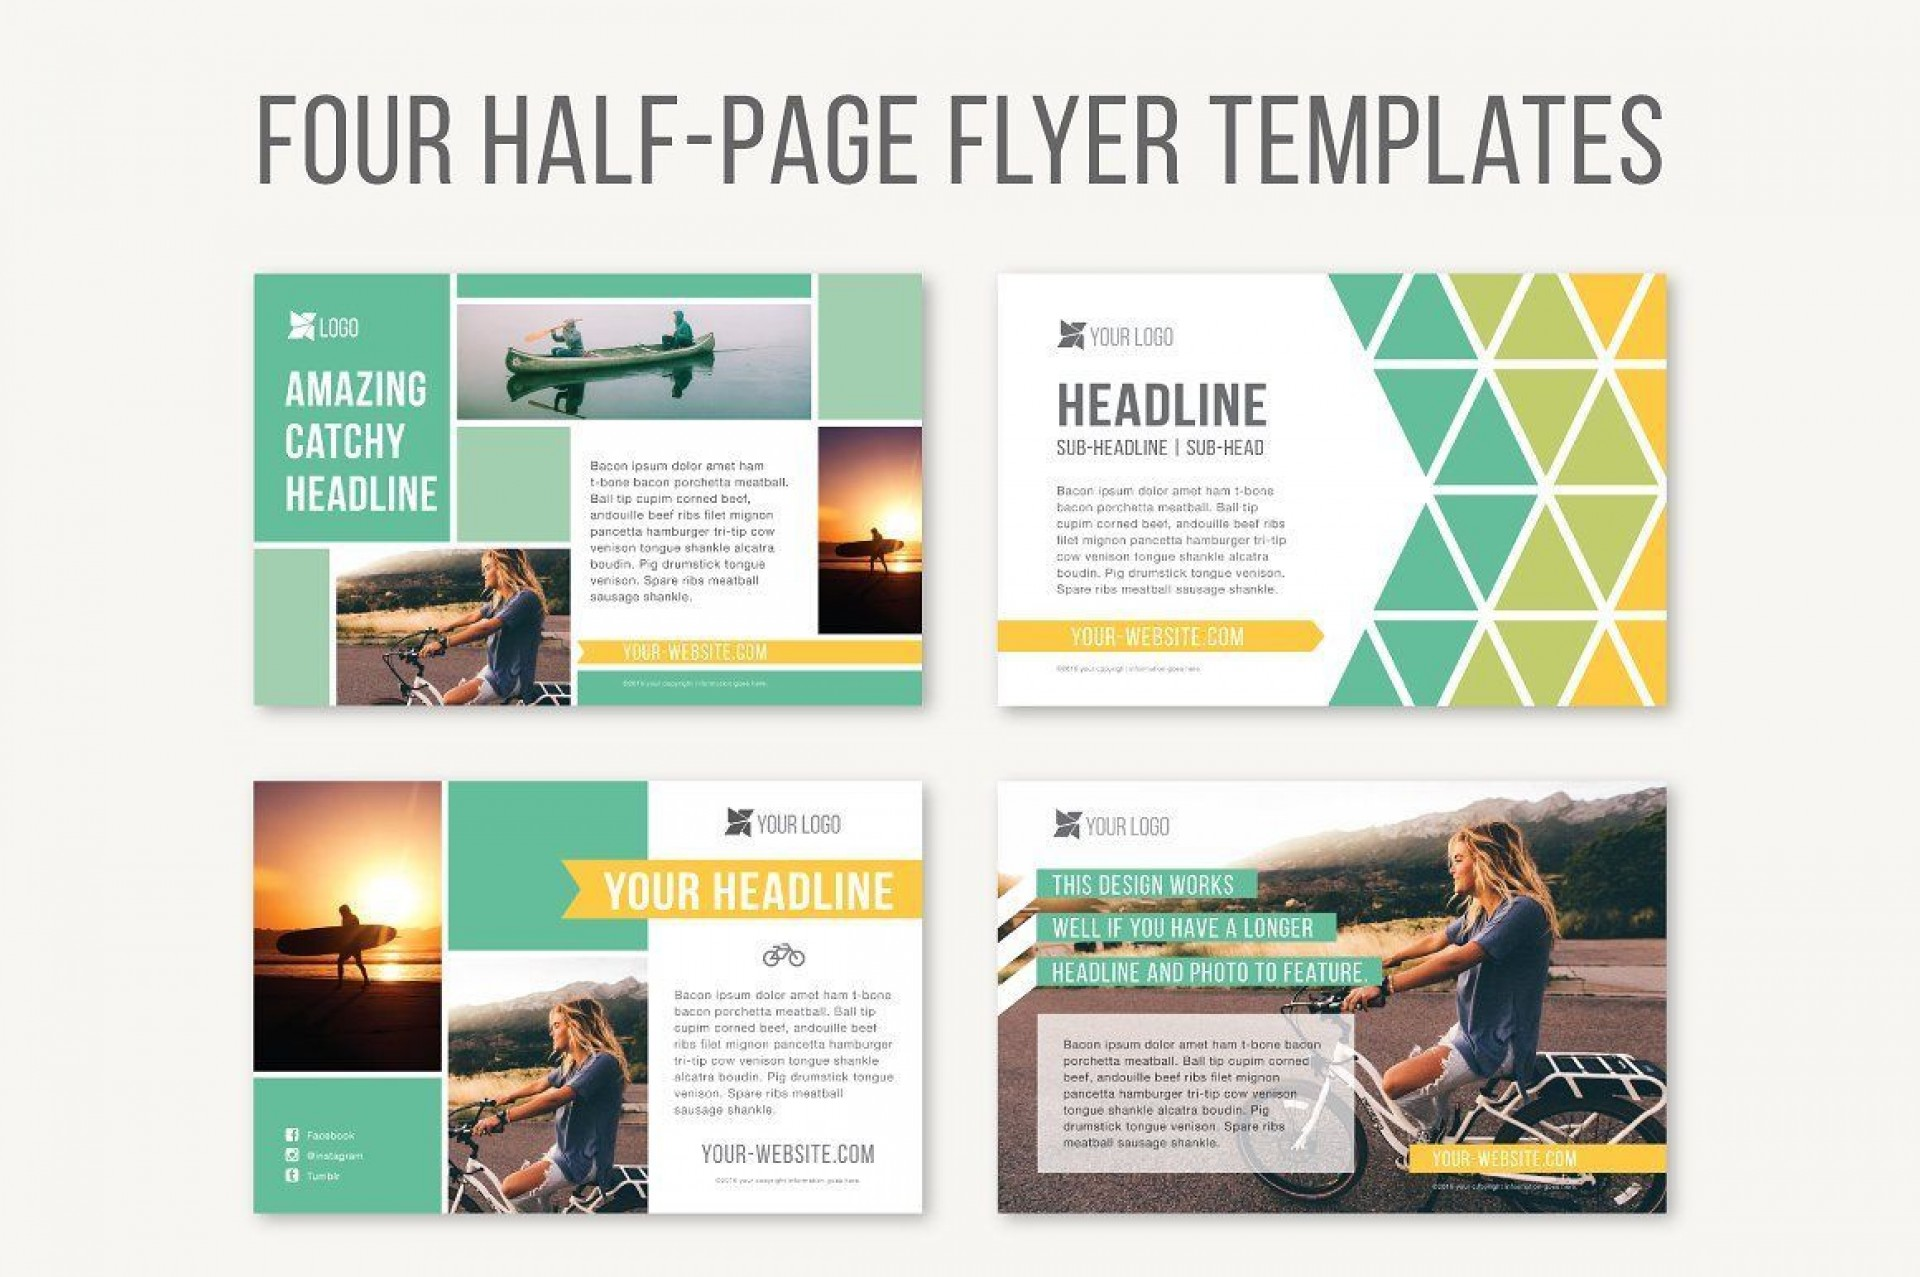 007 Stupendou Half Page Flyer Template Photo  Templates Google Doc Free Word Canva1920